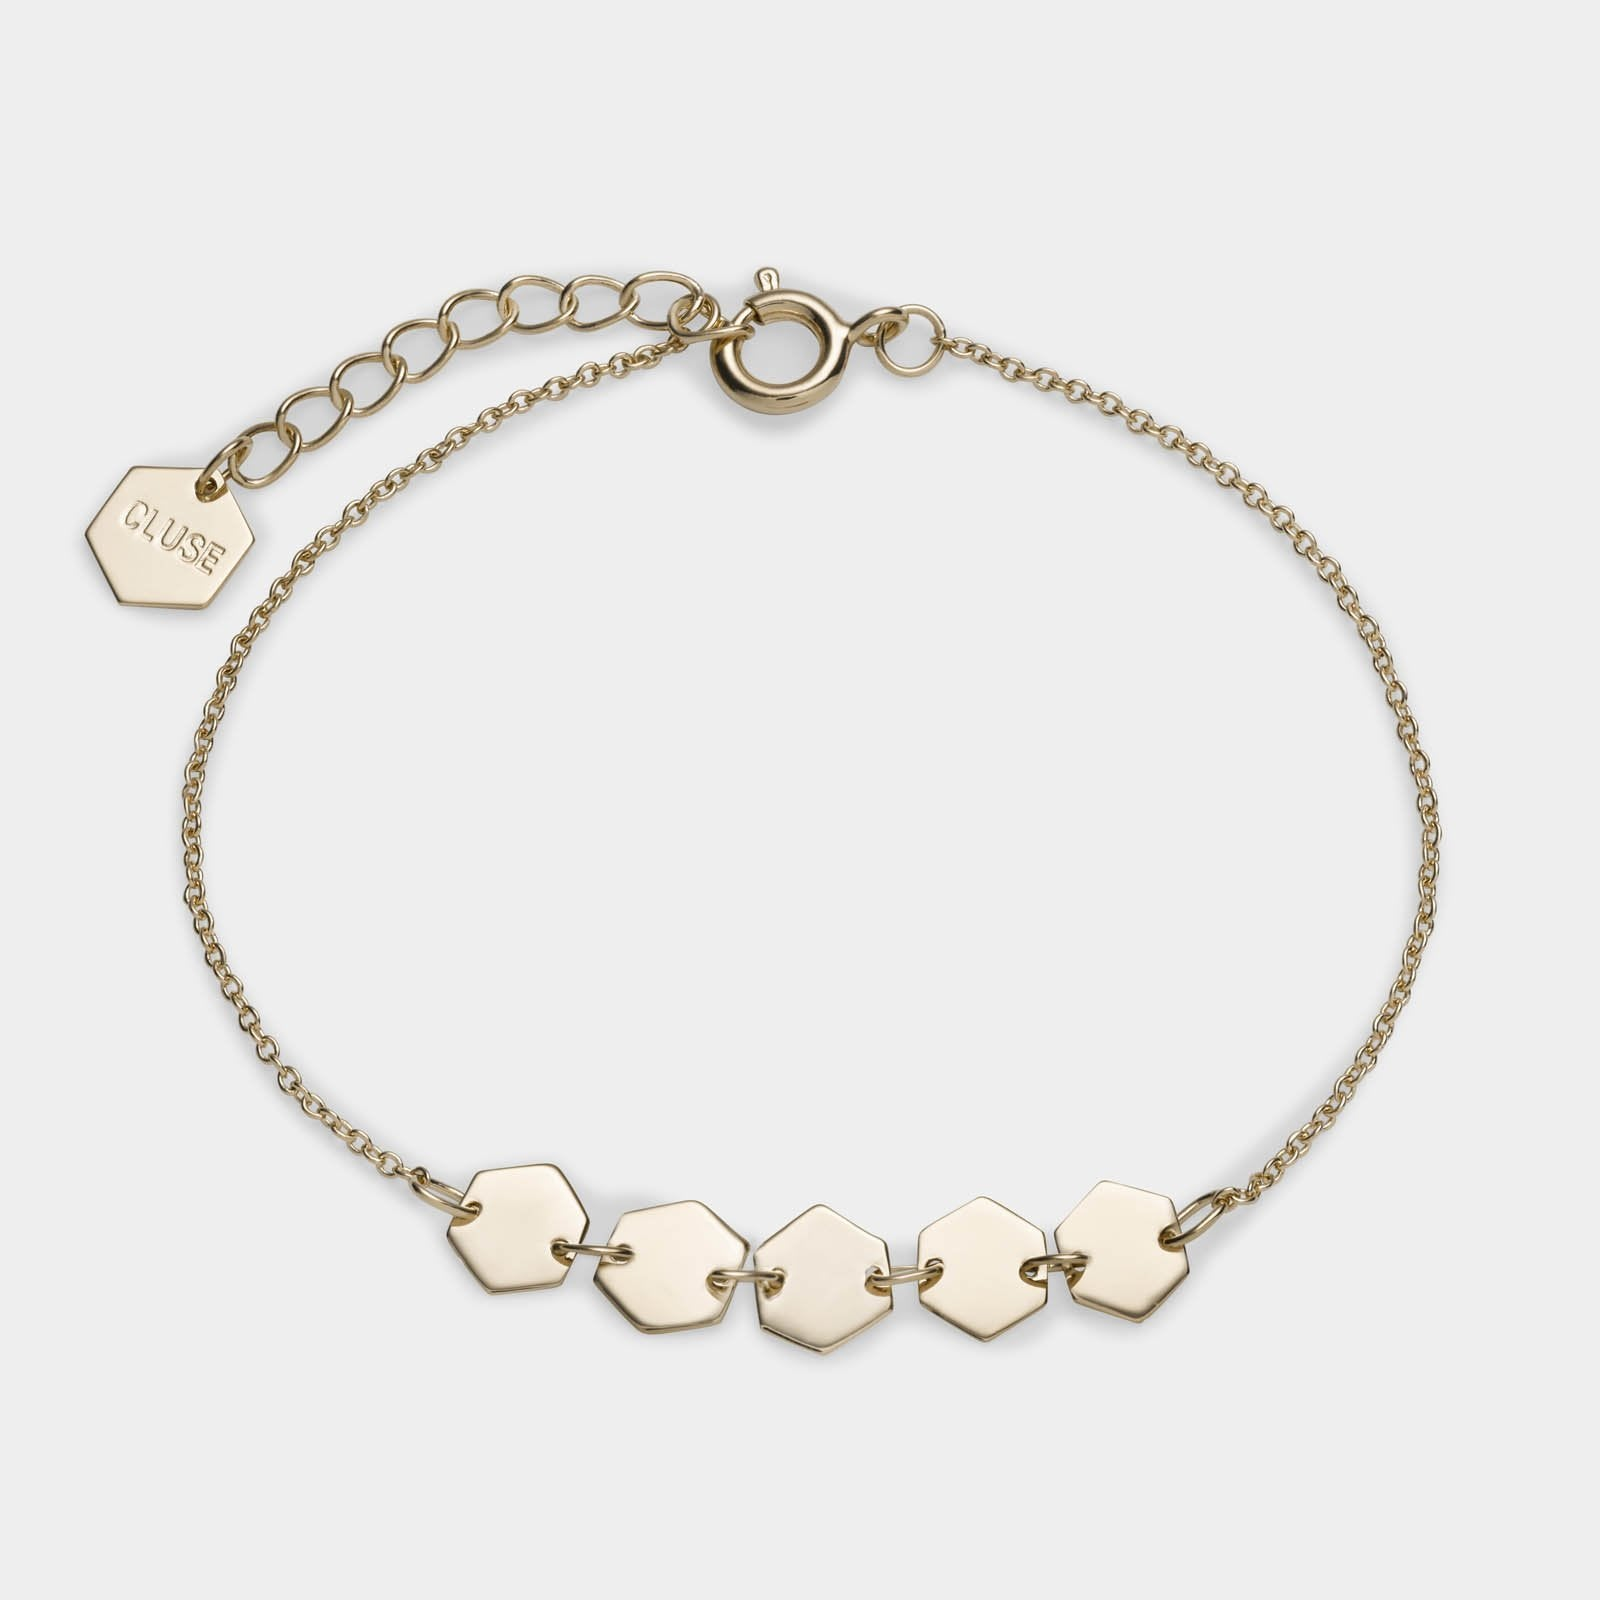 CLUSE Essentielle Gold Hexagons Chain Bracelet CLJ11007 - Bracciale